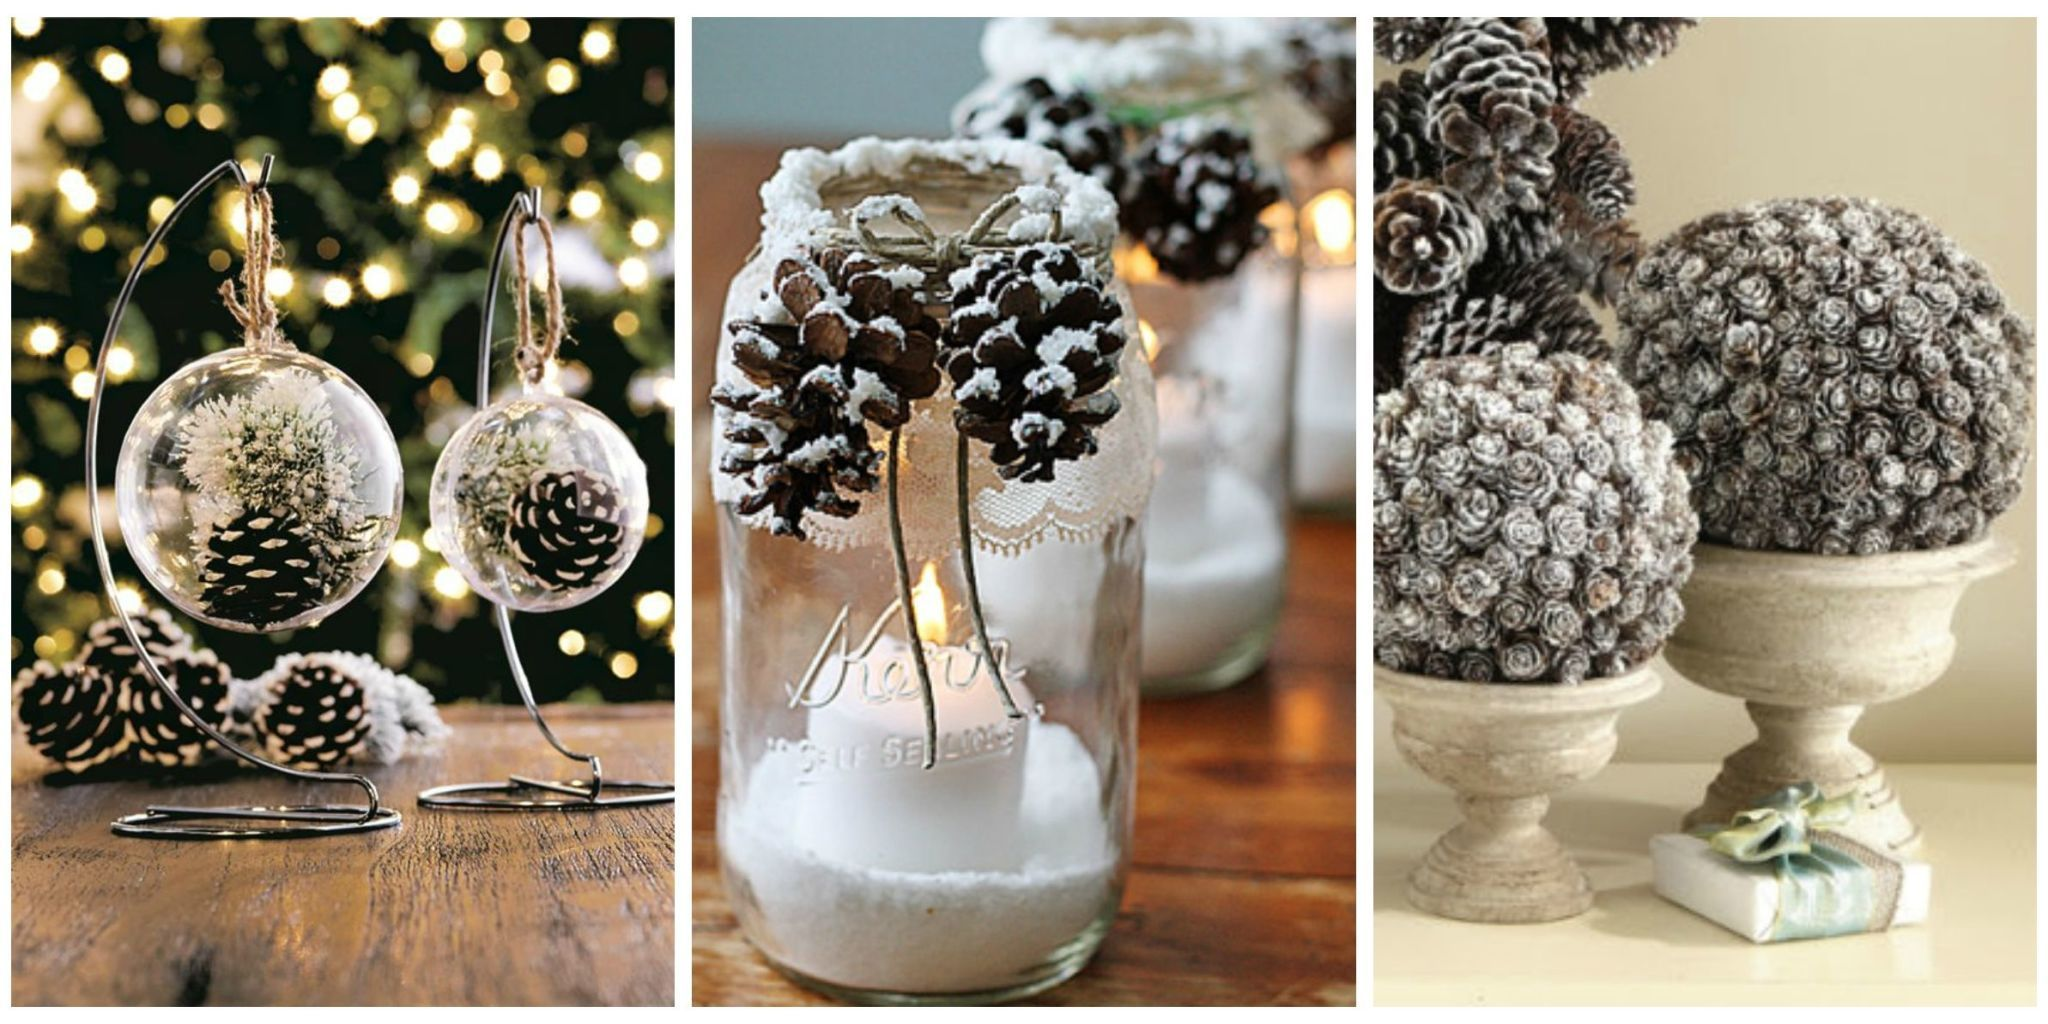 image & 21 Holiday Pine Cone Crafts - Ideas for Pinecone Christmas Decorations